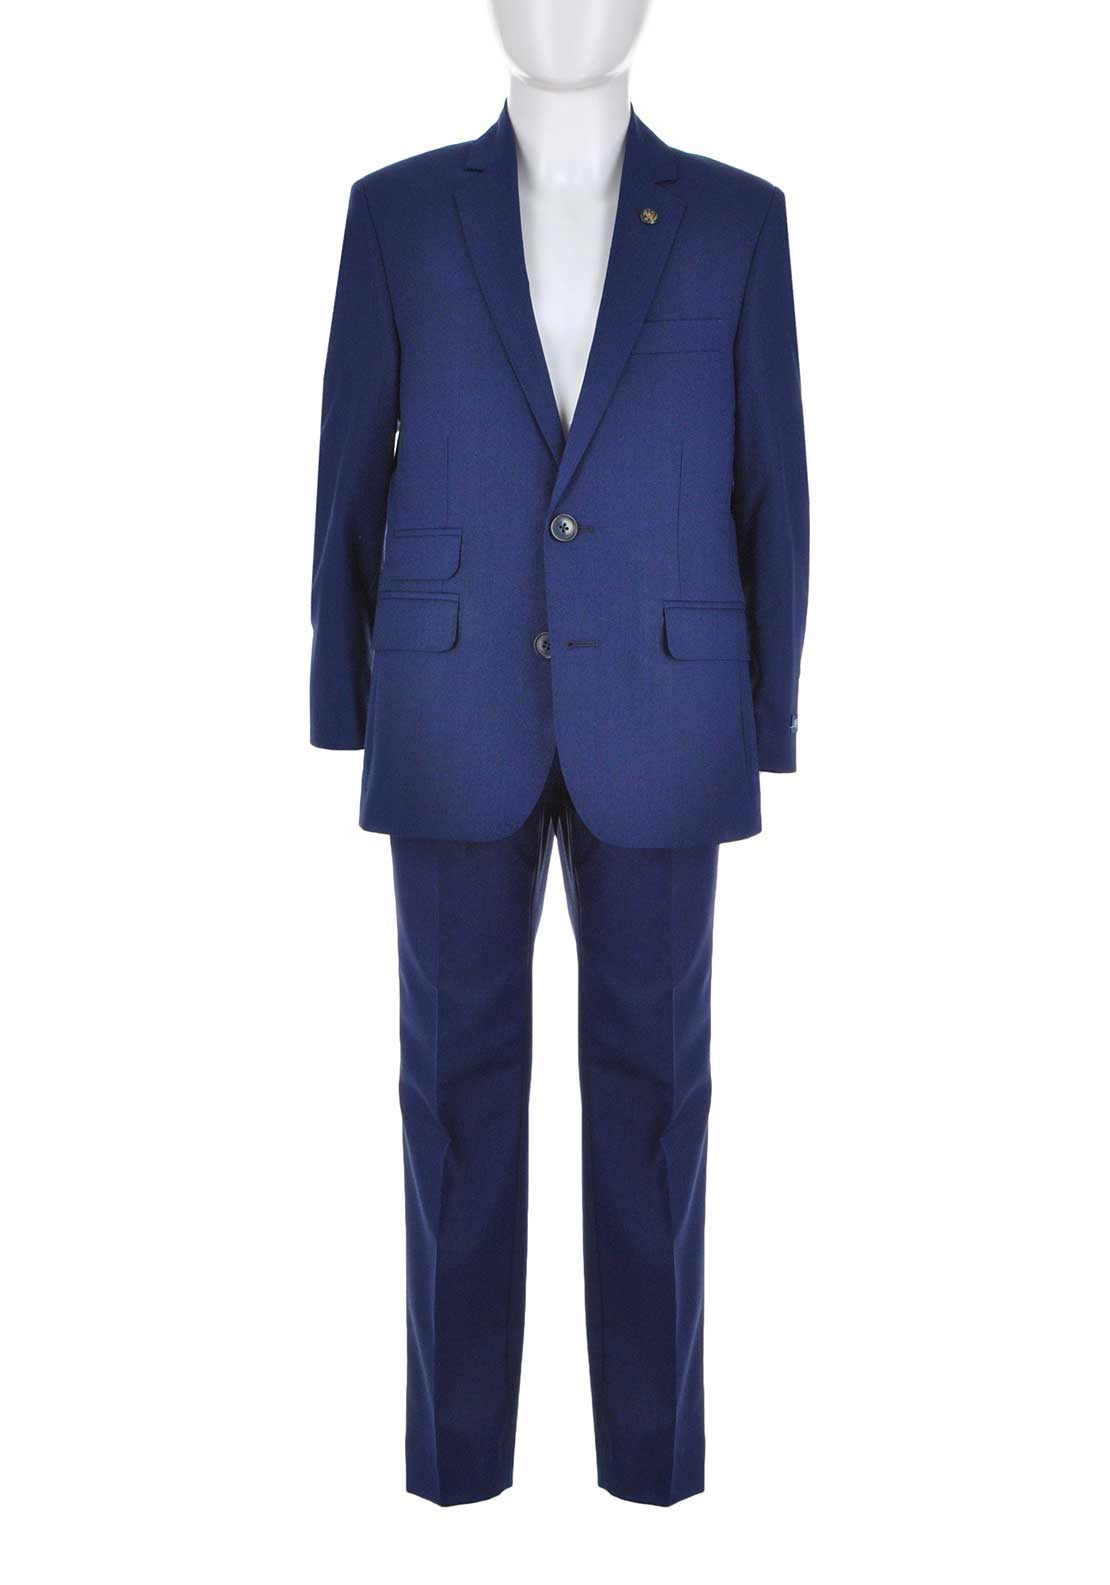 1880 Club Boys Woven Two Piece Suit, Blue